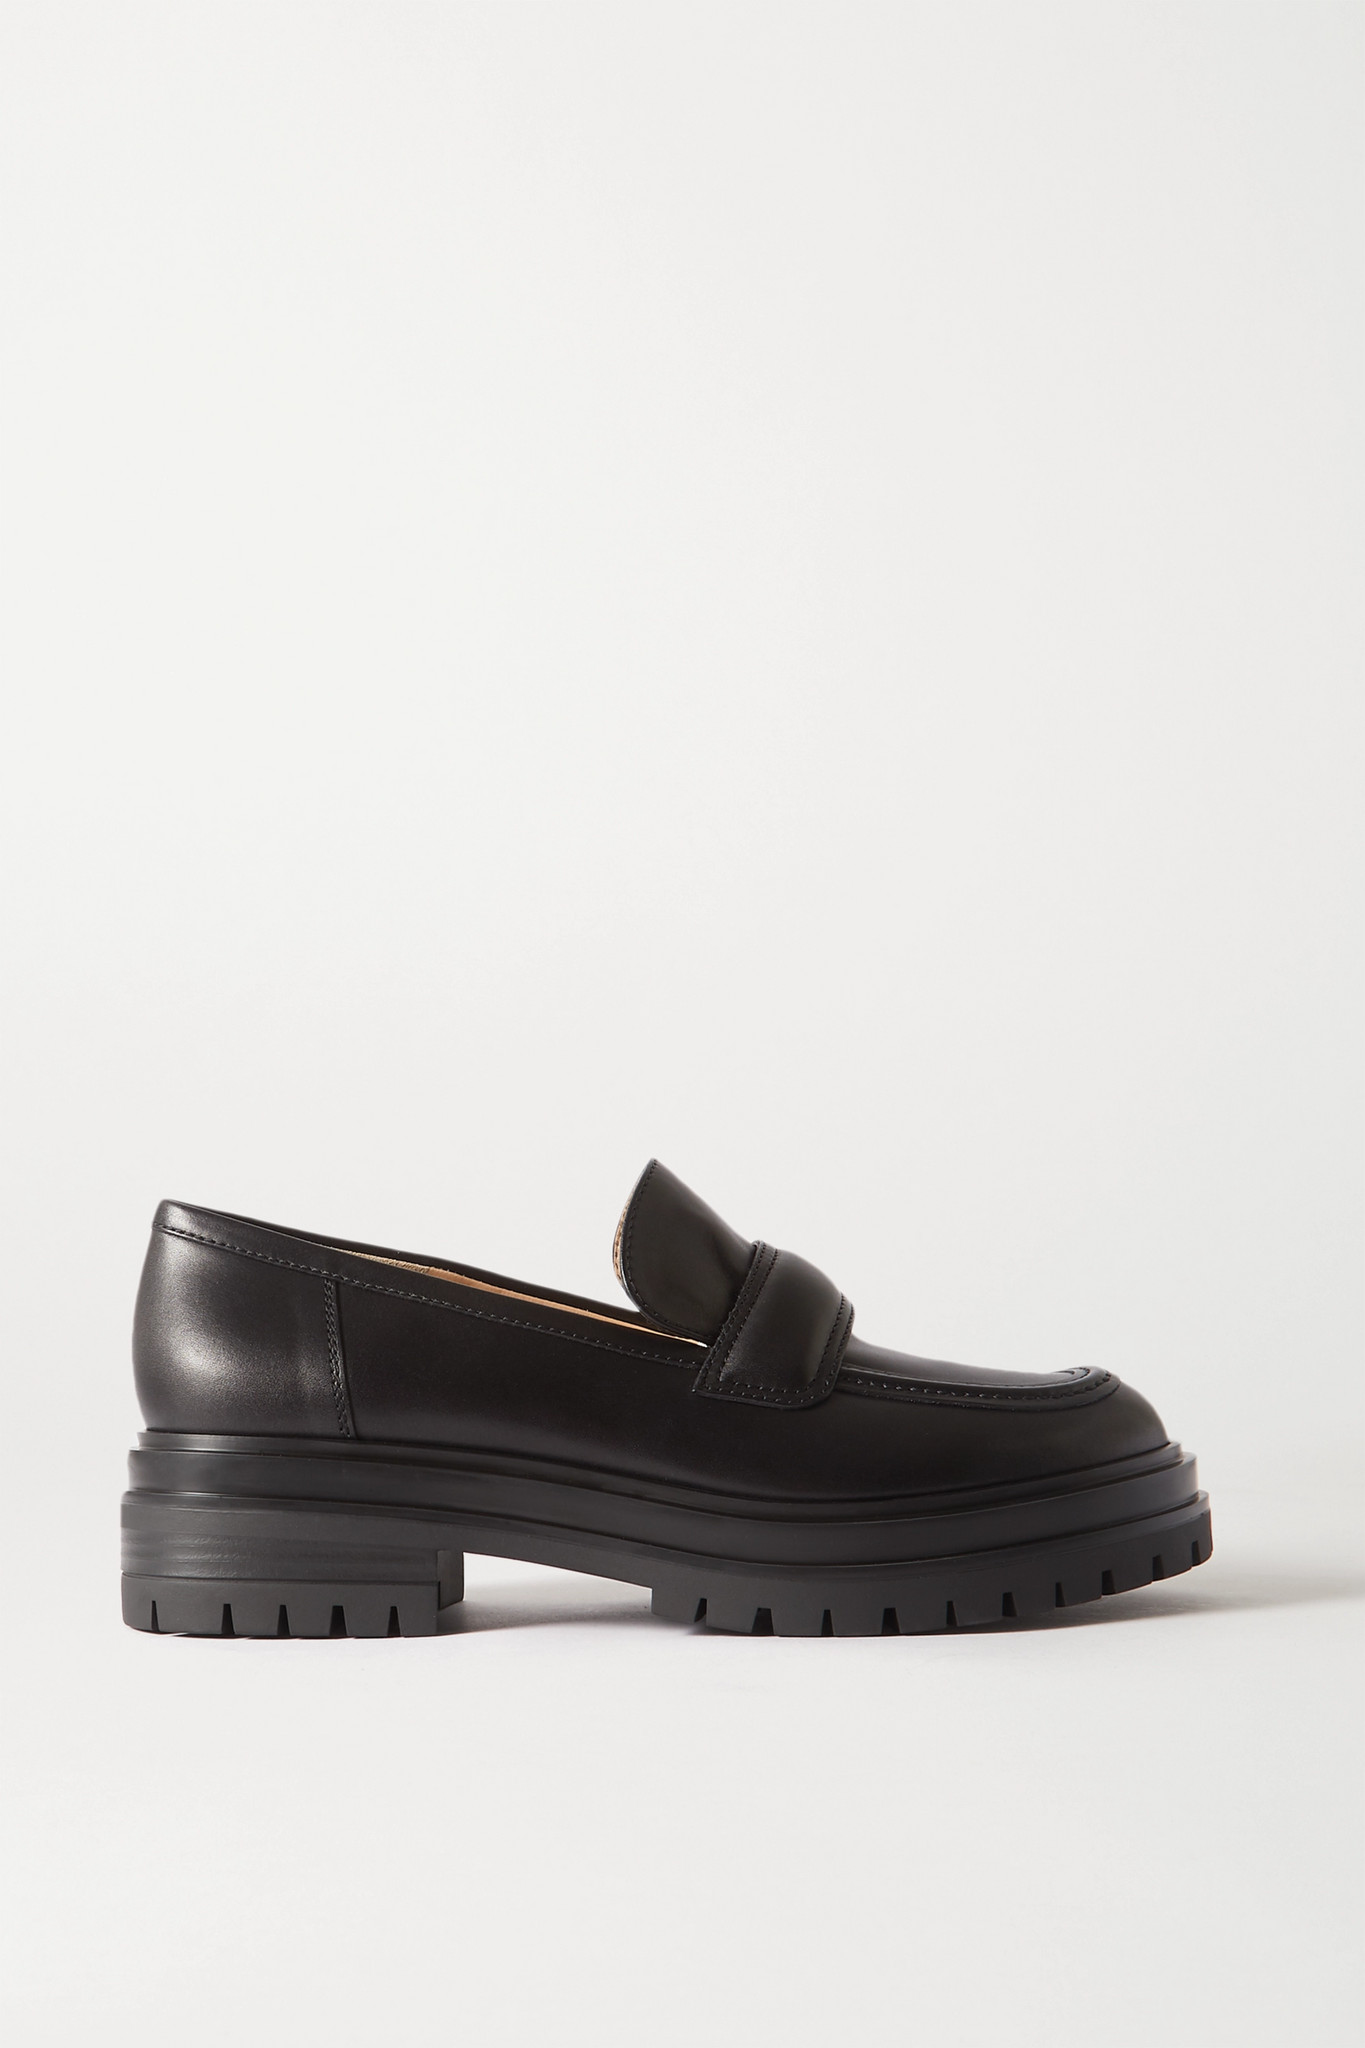 GIANVITO ROSSI - Leather Loafers - Black - IT35.5